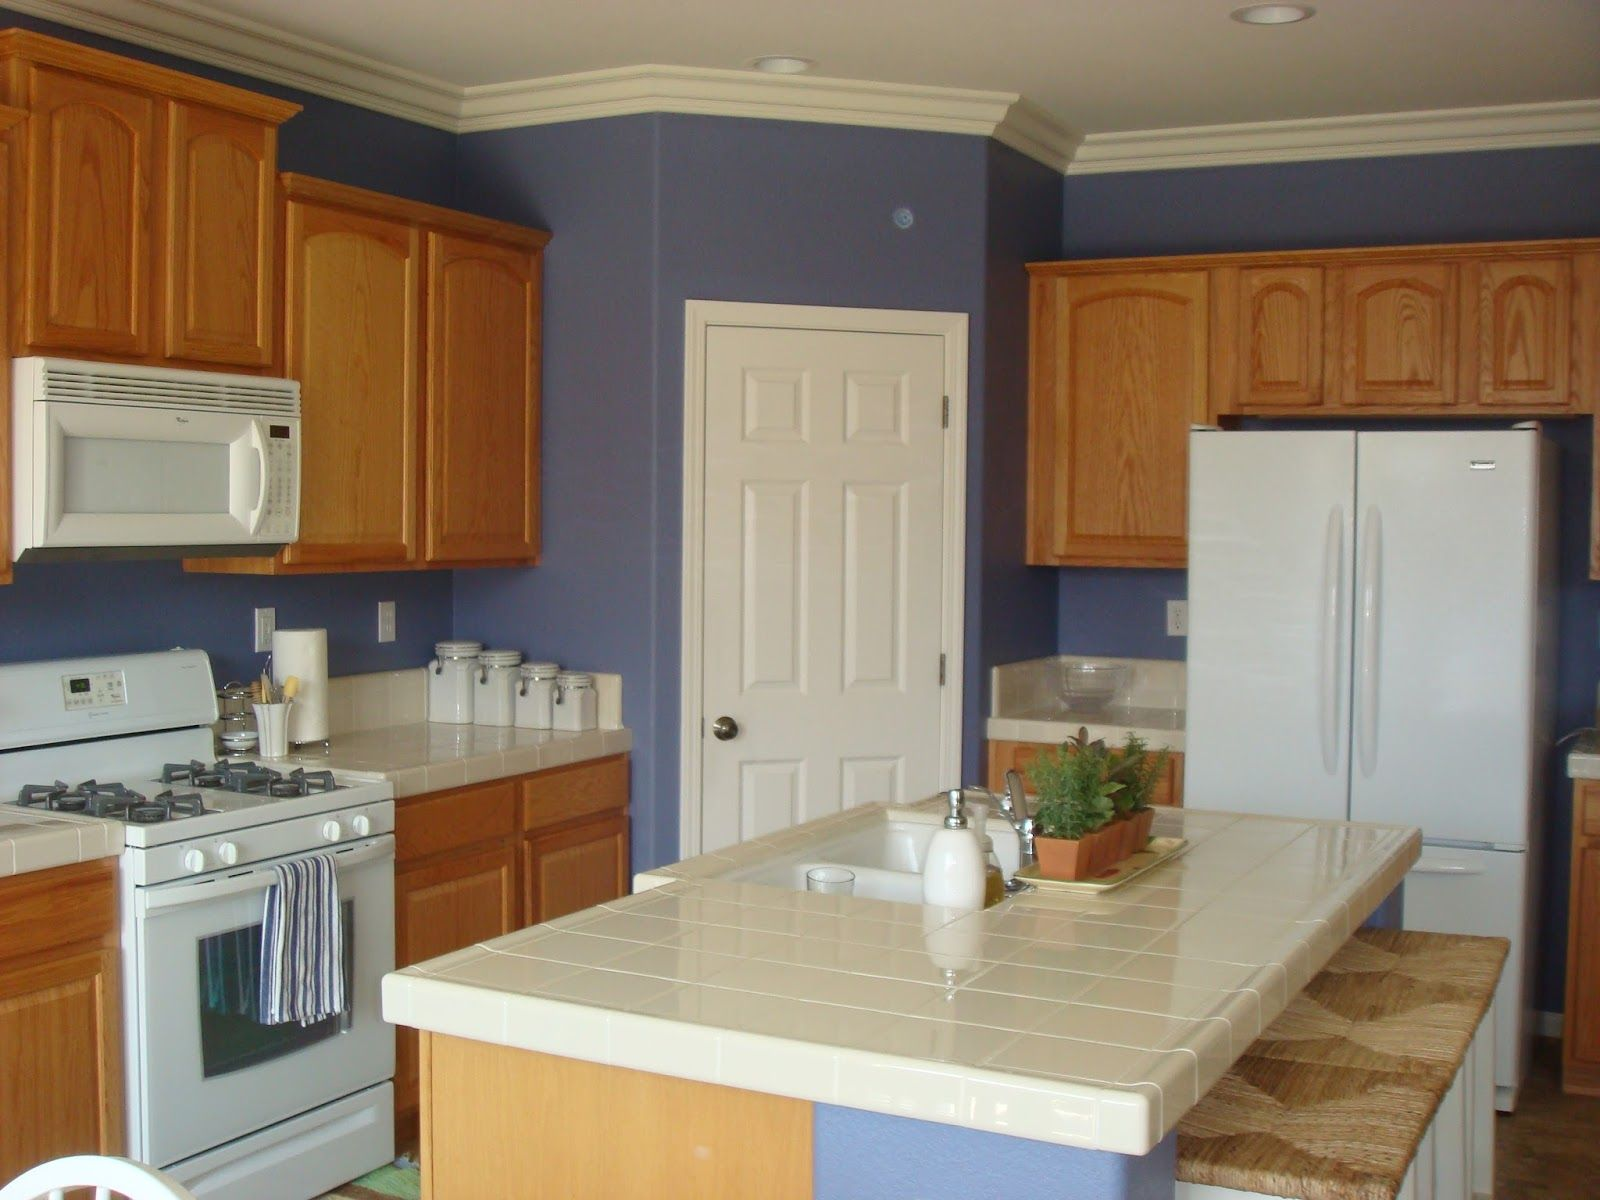 Pleasurable Blue Colors For Kitchen Walls With Wooden